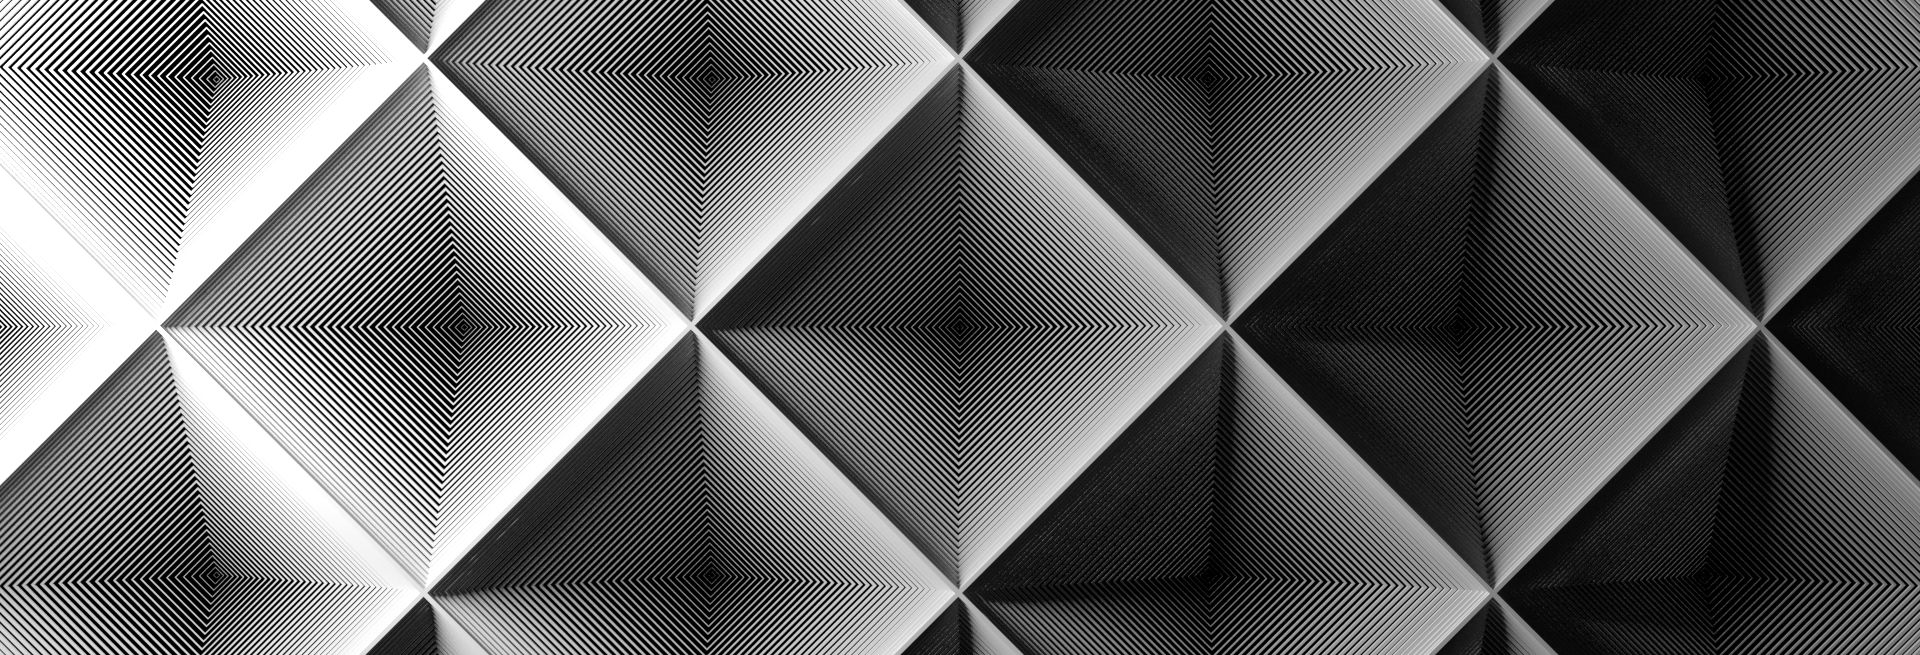 Development Image for Adobe Max, Op Art